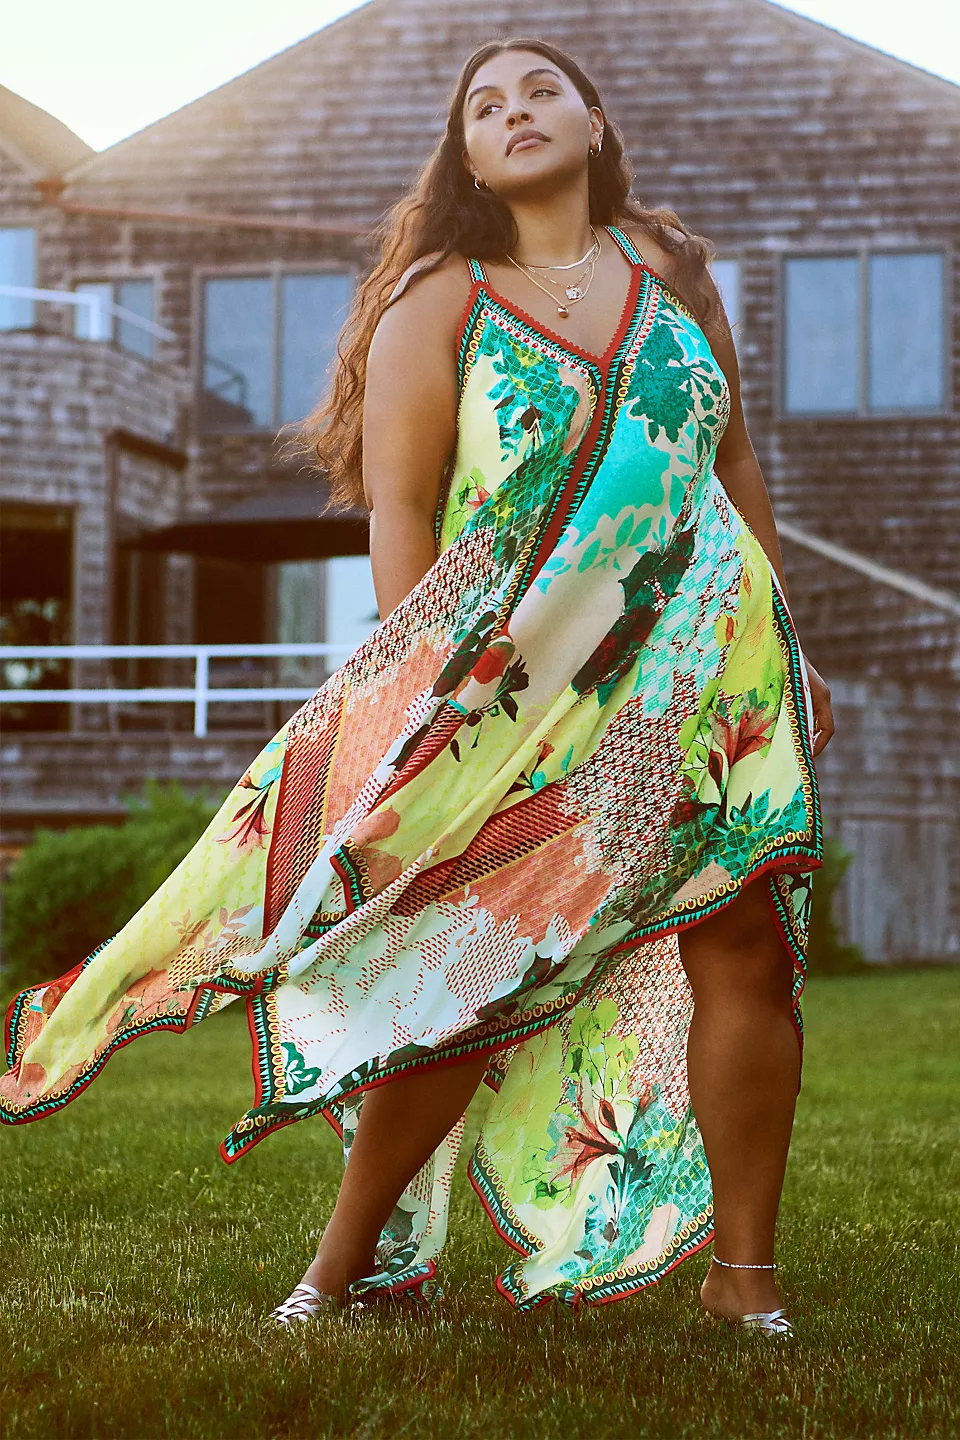 """<br><br><strong>Bhanuni by Jyoti</strong> Floral Contrast Maxi Dress, $, available at <a href=""""https://go.skimresources.com/?id=30283X879131&url=https%3A%2F%2Fwww.anthropologie.com%2Fshop%2Ffloral-contrast-maxi-dress%3Fcolor%3D038%26type%3DPLUS%26quantity%3D1"""" rel=""""nofollow noopener"""" target=""""_blank"""" data-ylk=""""slk:Anthropologie"""" class=""""link rapid-noclick-resp"""">Anthropologie</a>"""